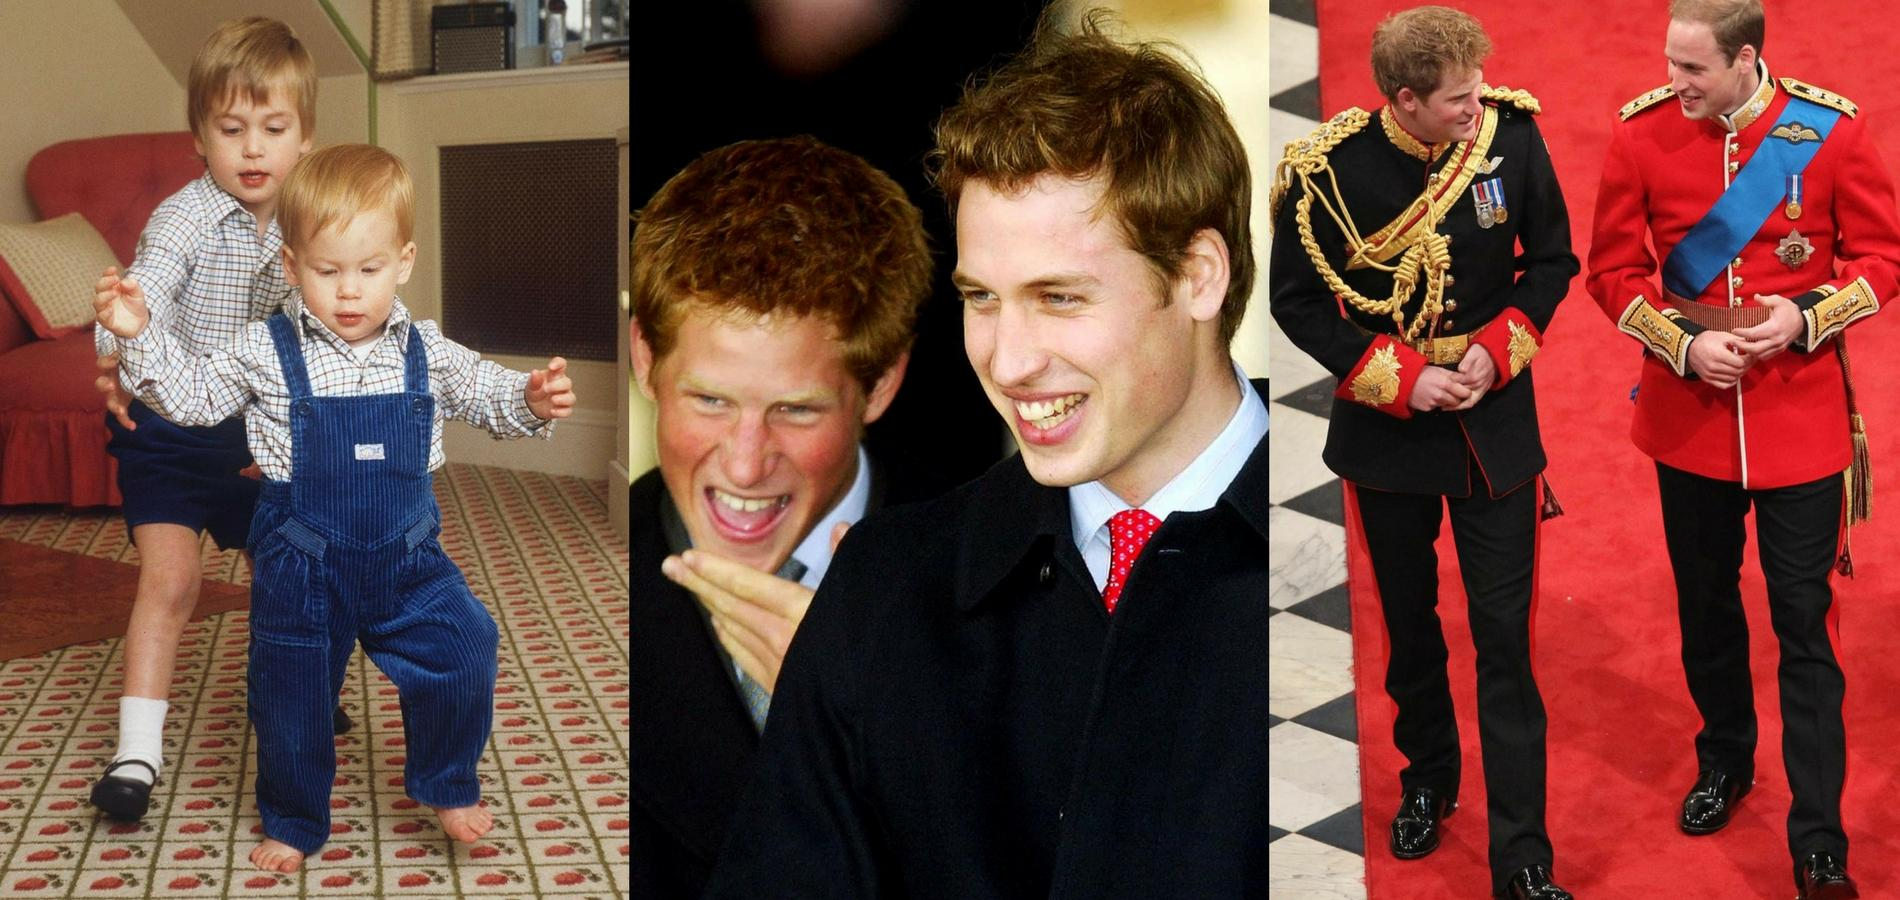 Les princes Harry et William